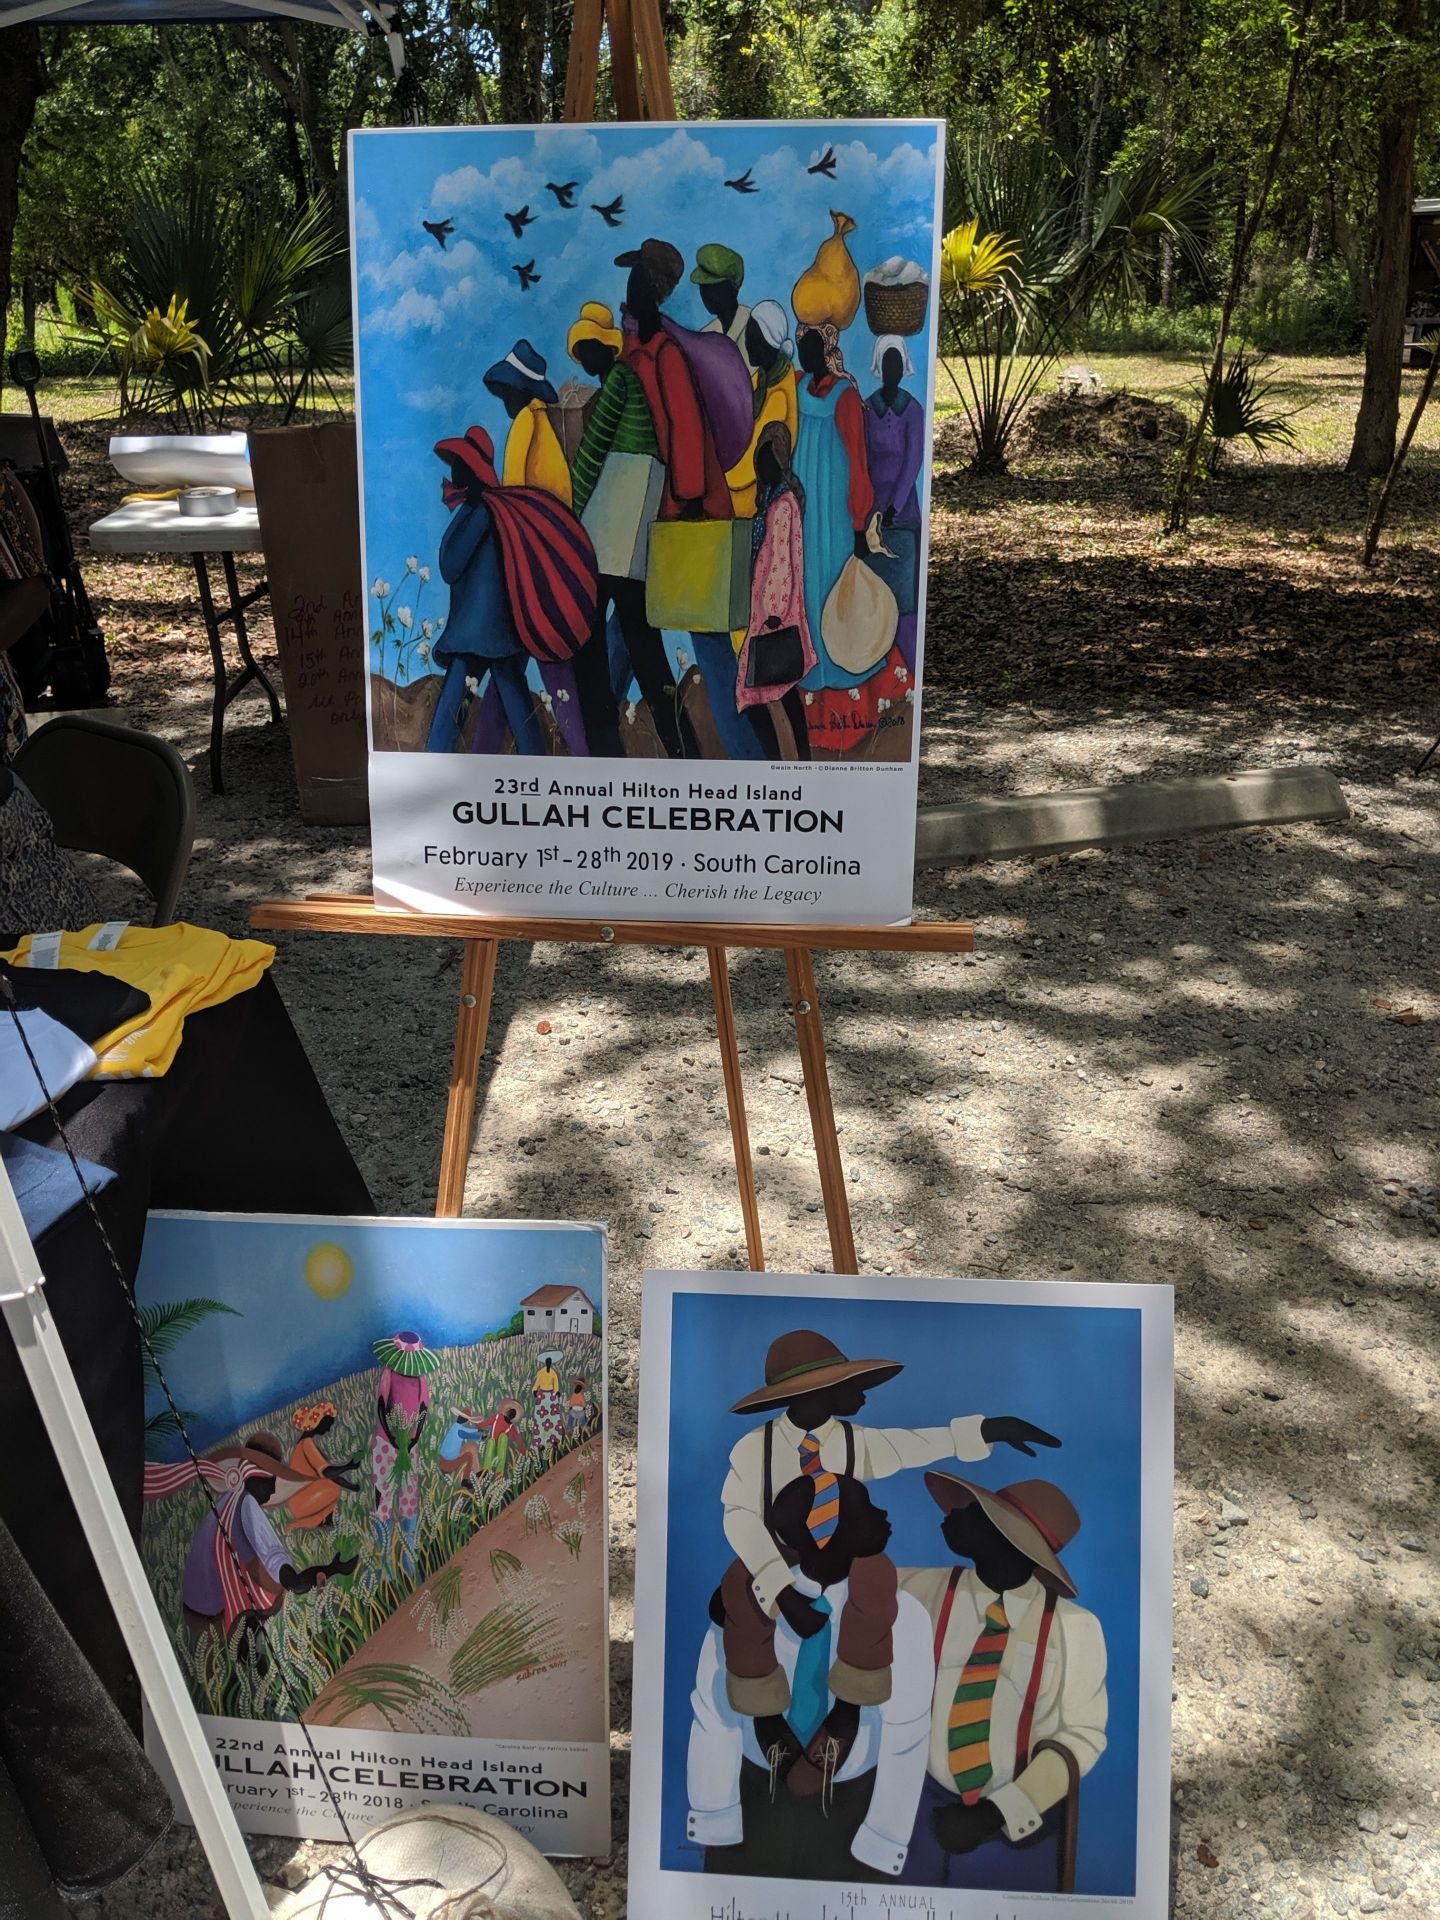 IMG_20190615_131256-1440x1920 Mitchellville Juneteenth: Family Fun Through Celebrating Black Heritage in Hilton Head